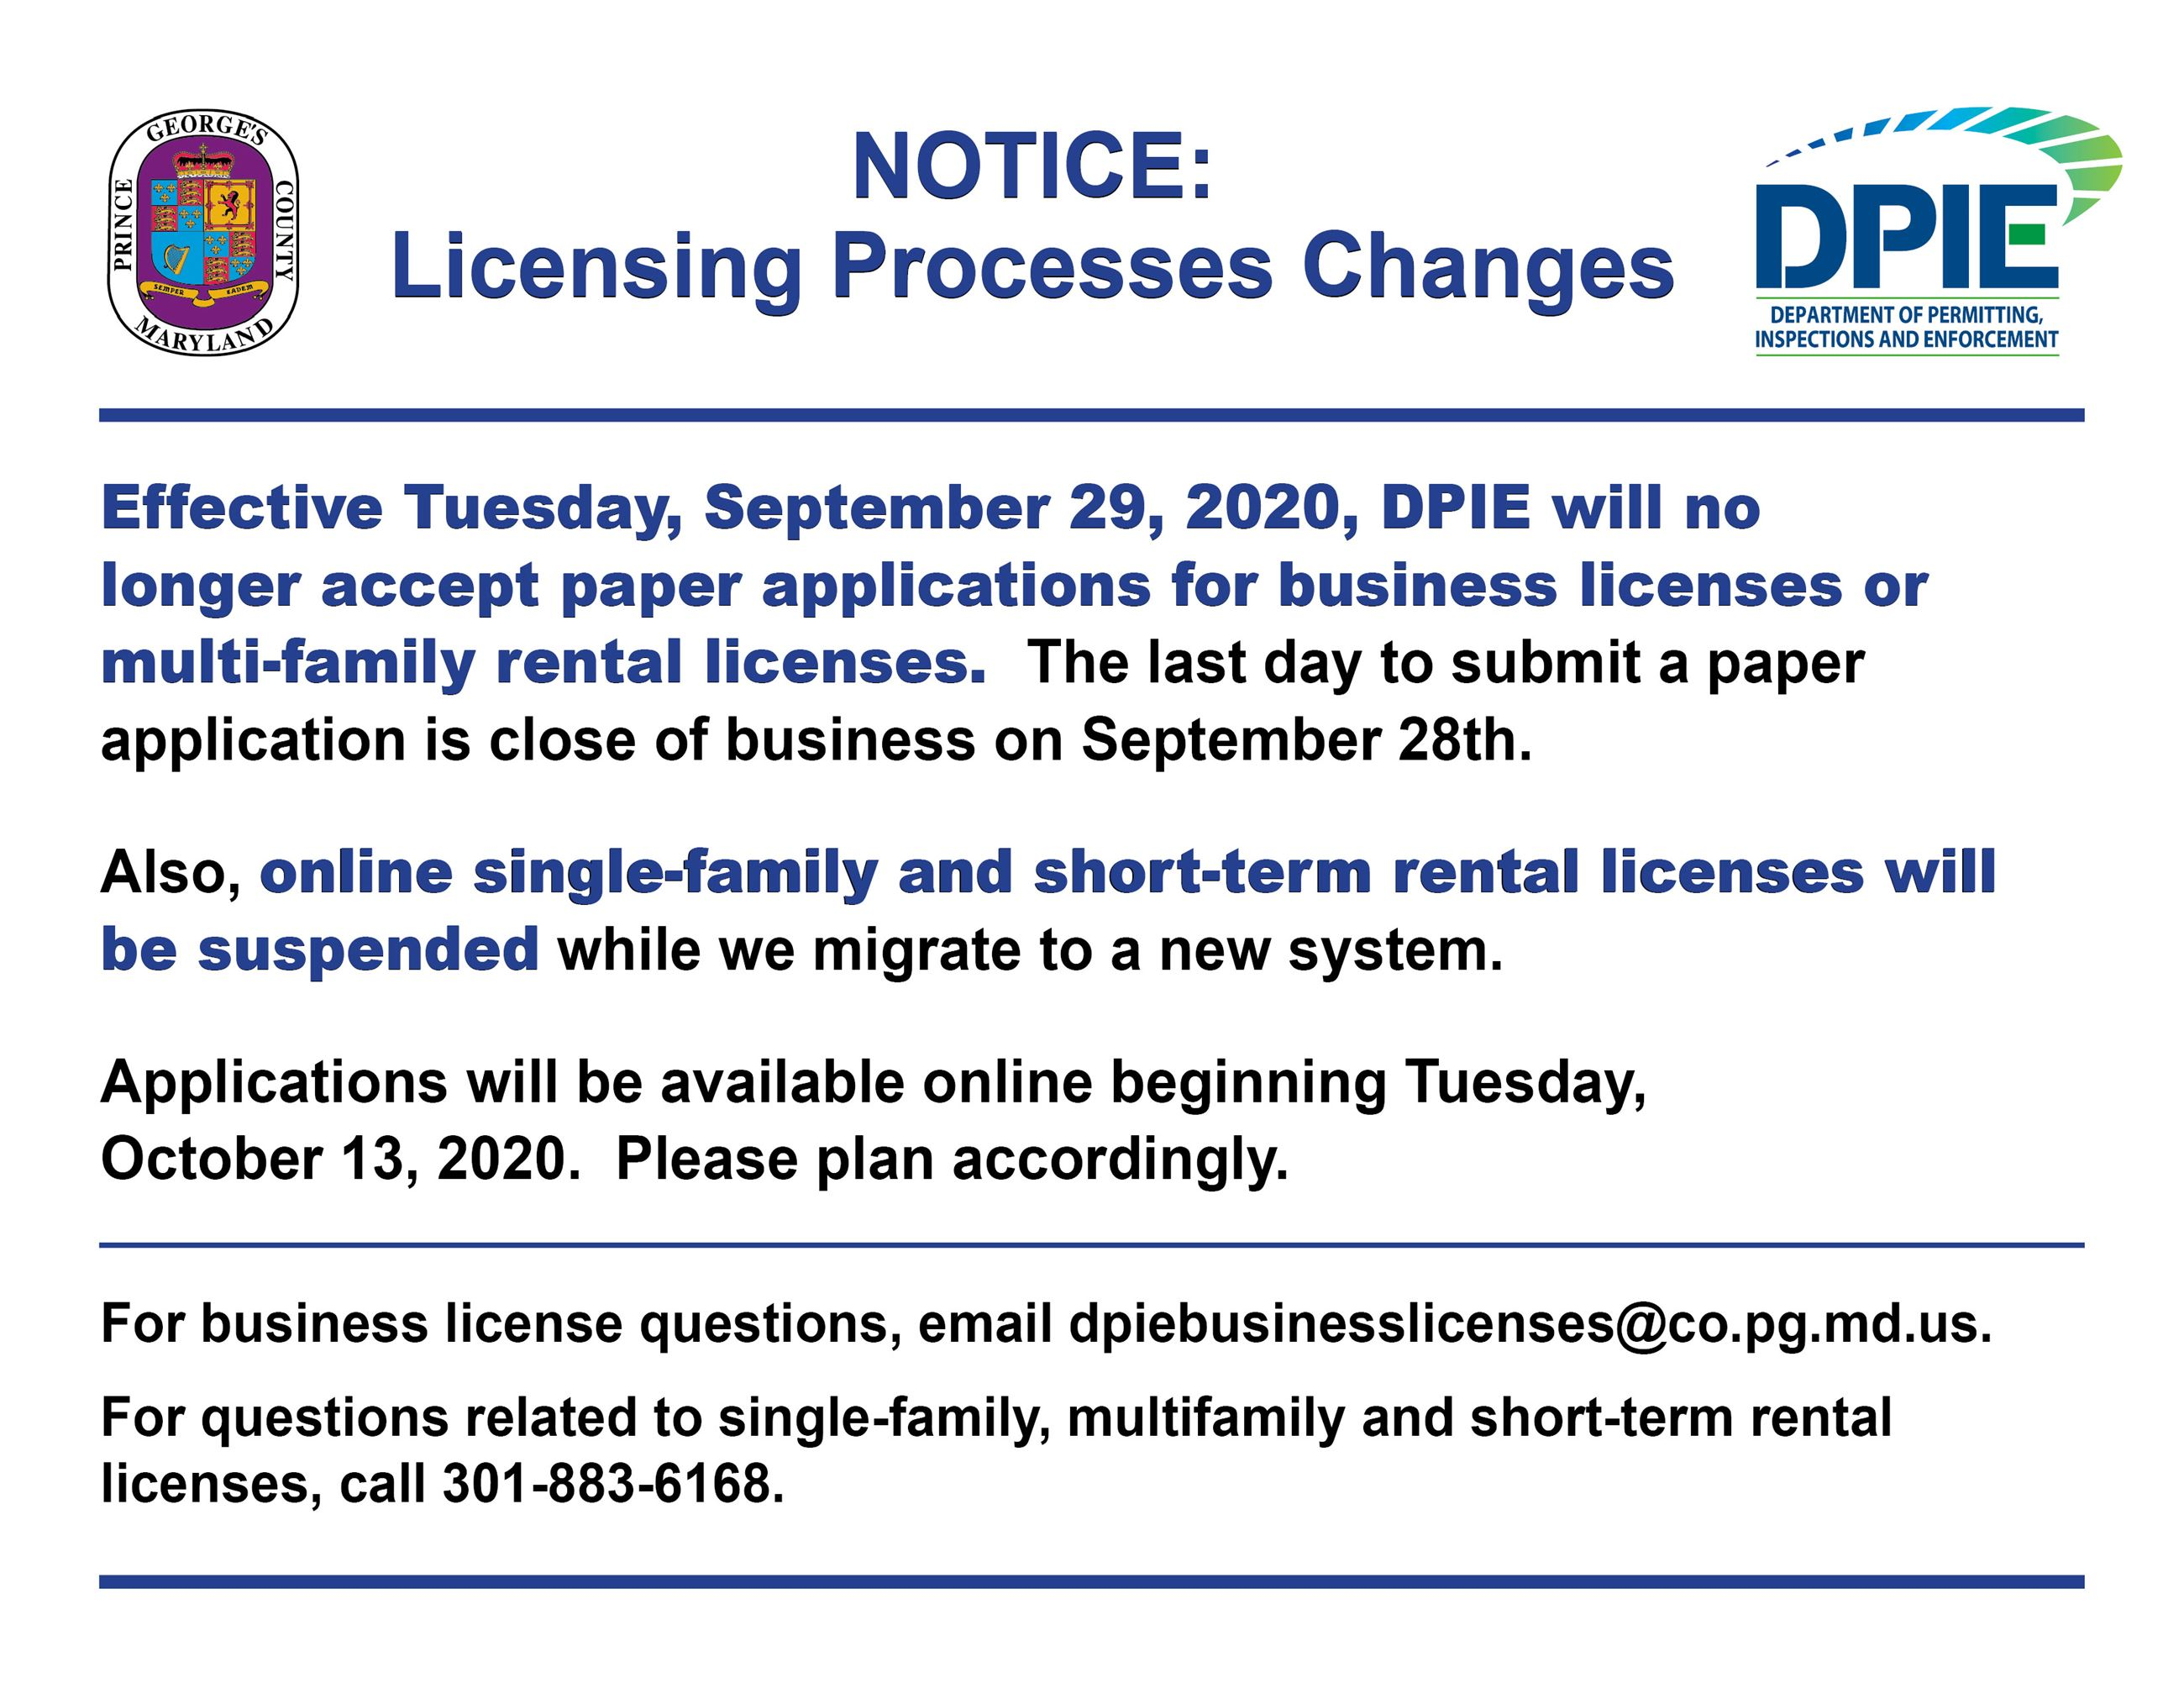 Business Licenses and rental licenses change to Electronic applications Only